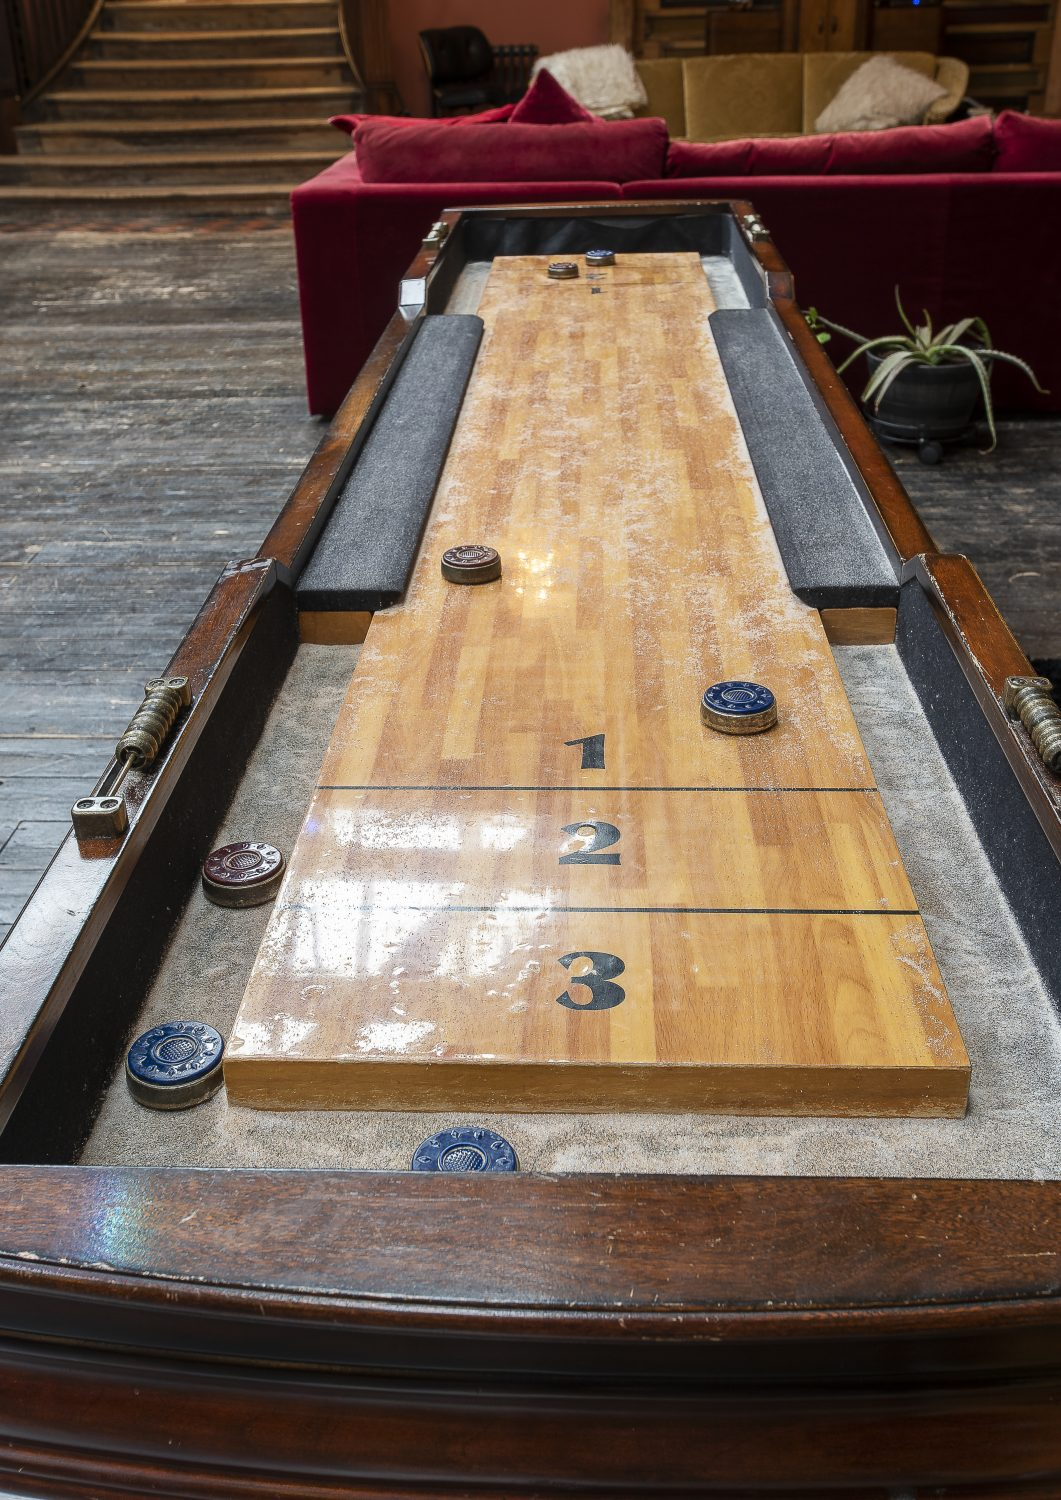 The living space is filled with original finds, such as this vintage shuffleboard table